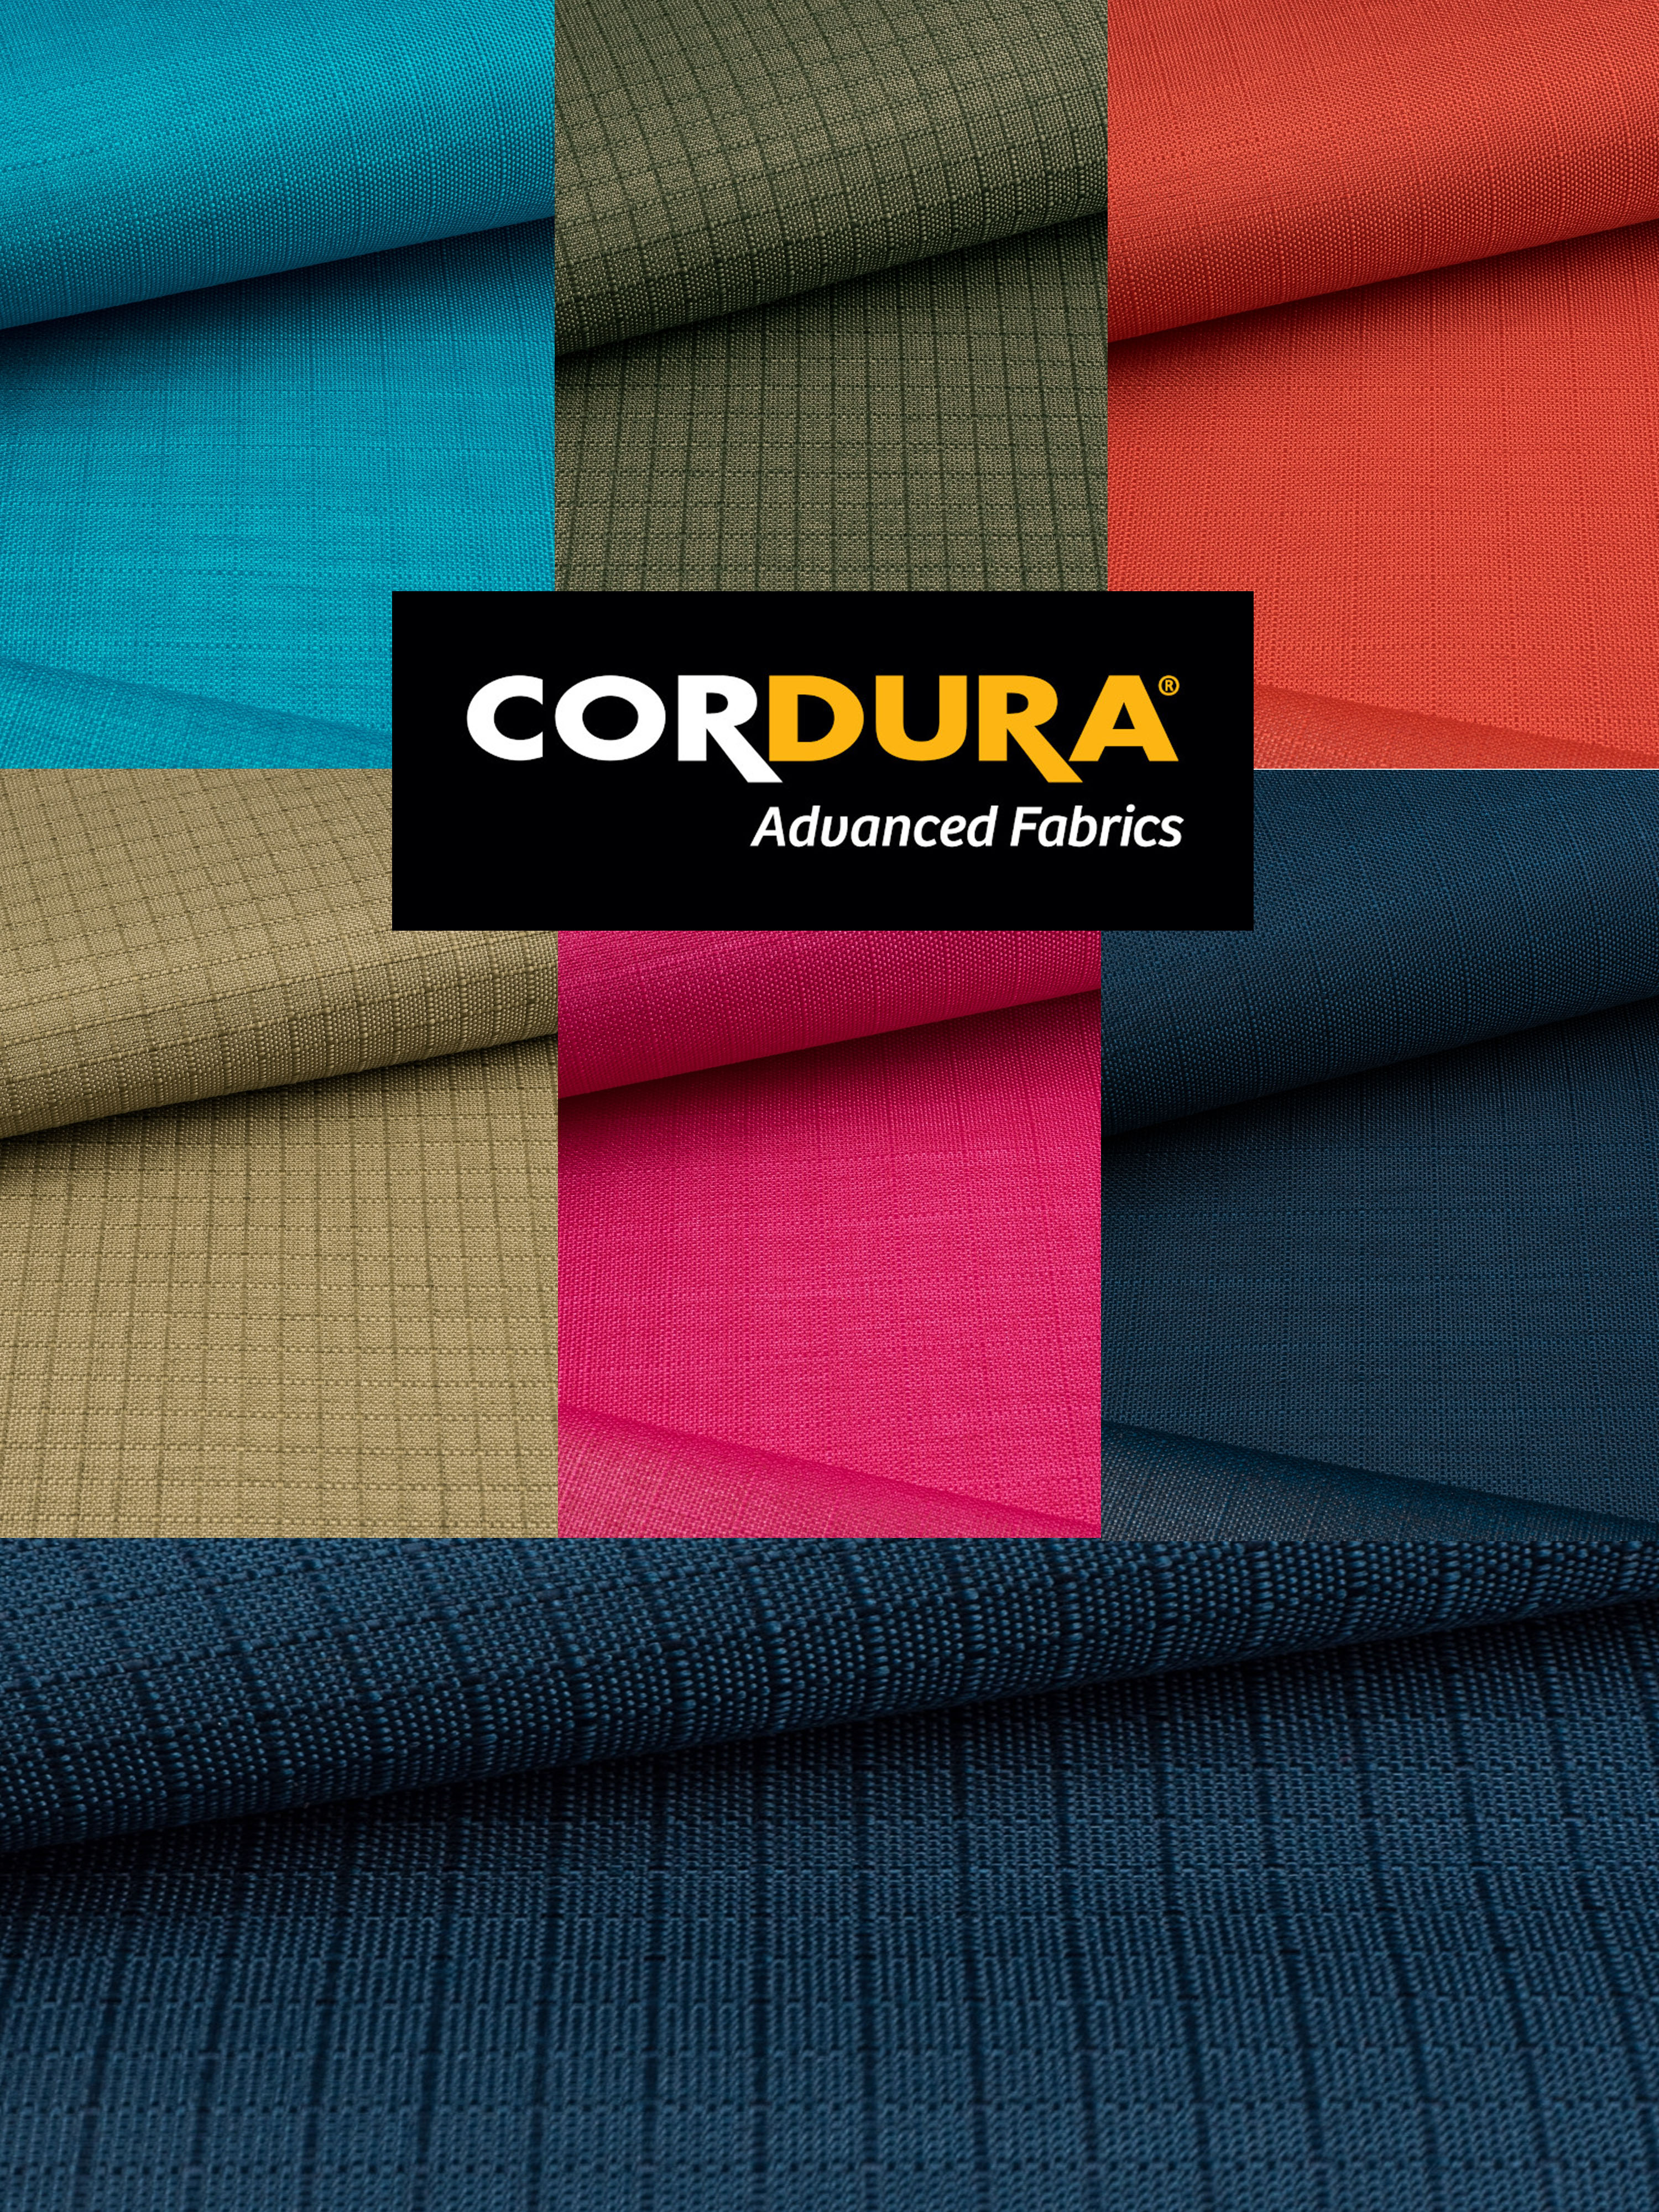 Colorful Cordura®!